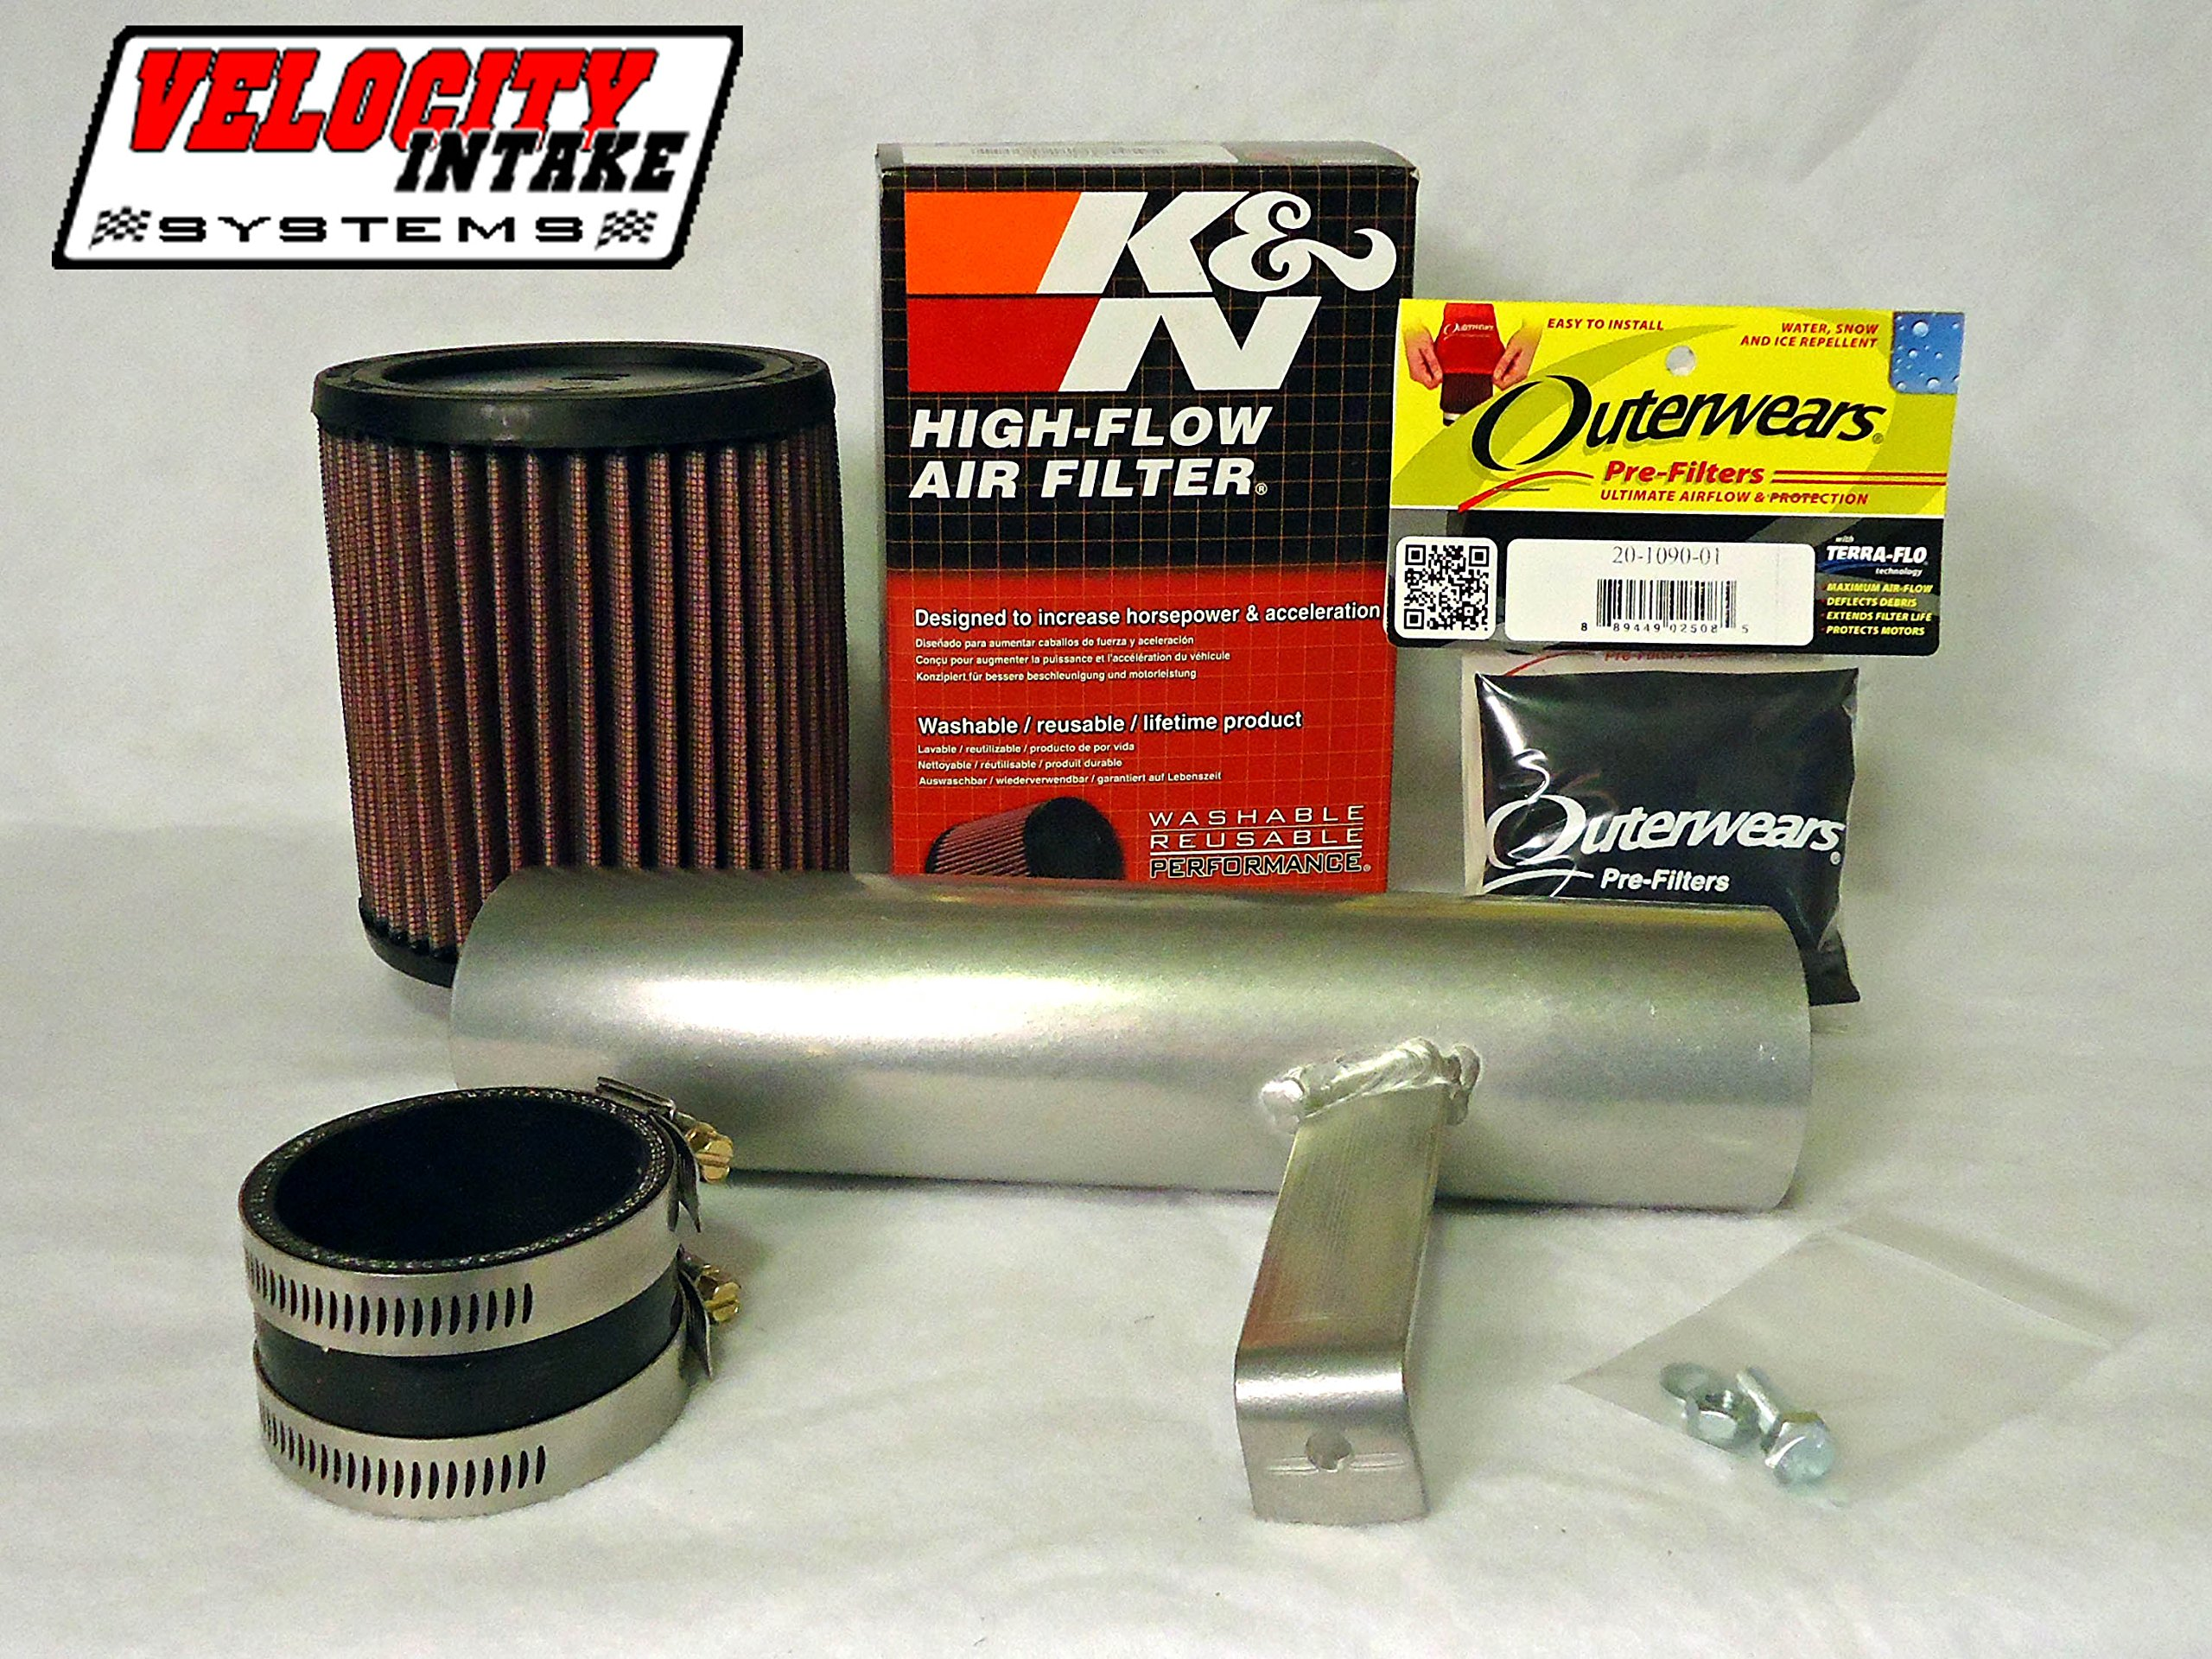 Malone Motorsports VelI-H400-2 Honda 400ex 400X Velocity Intake System with K&N Filter by Velocity Intake Systems (Image #1)